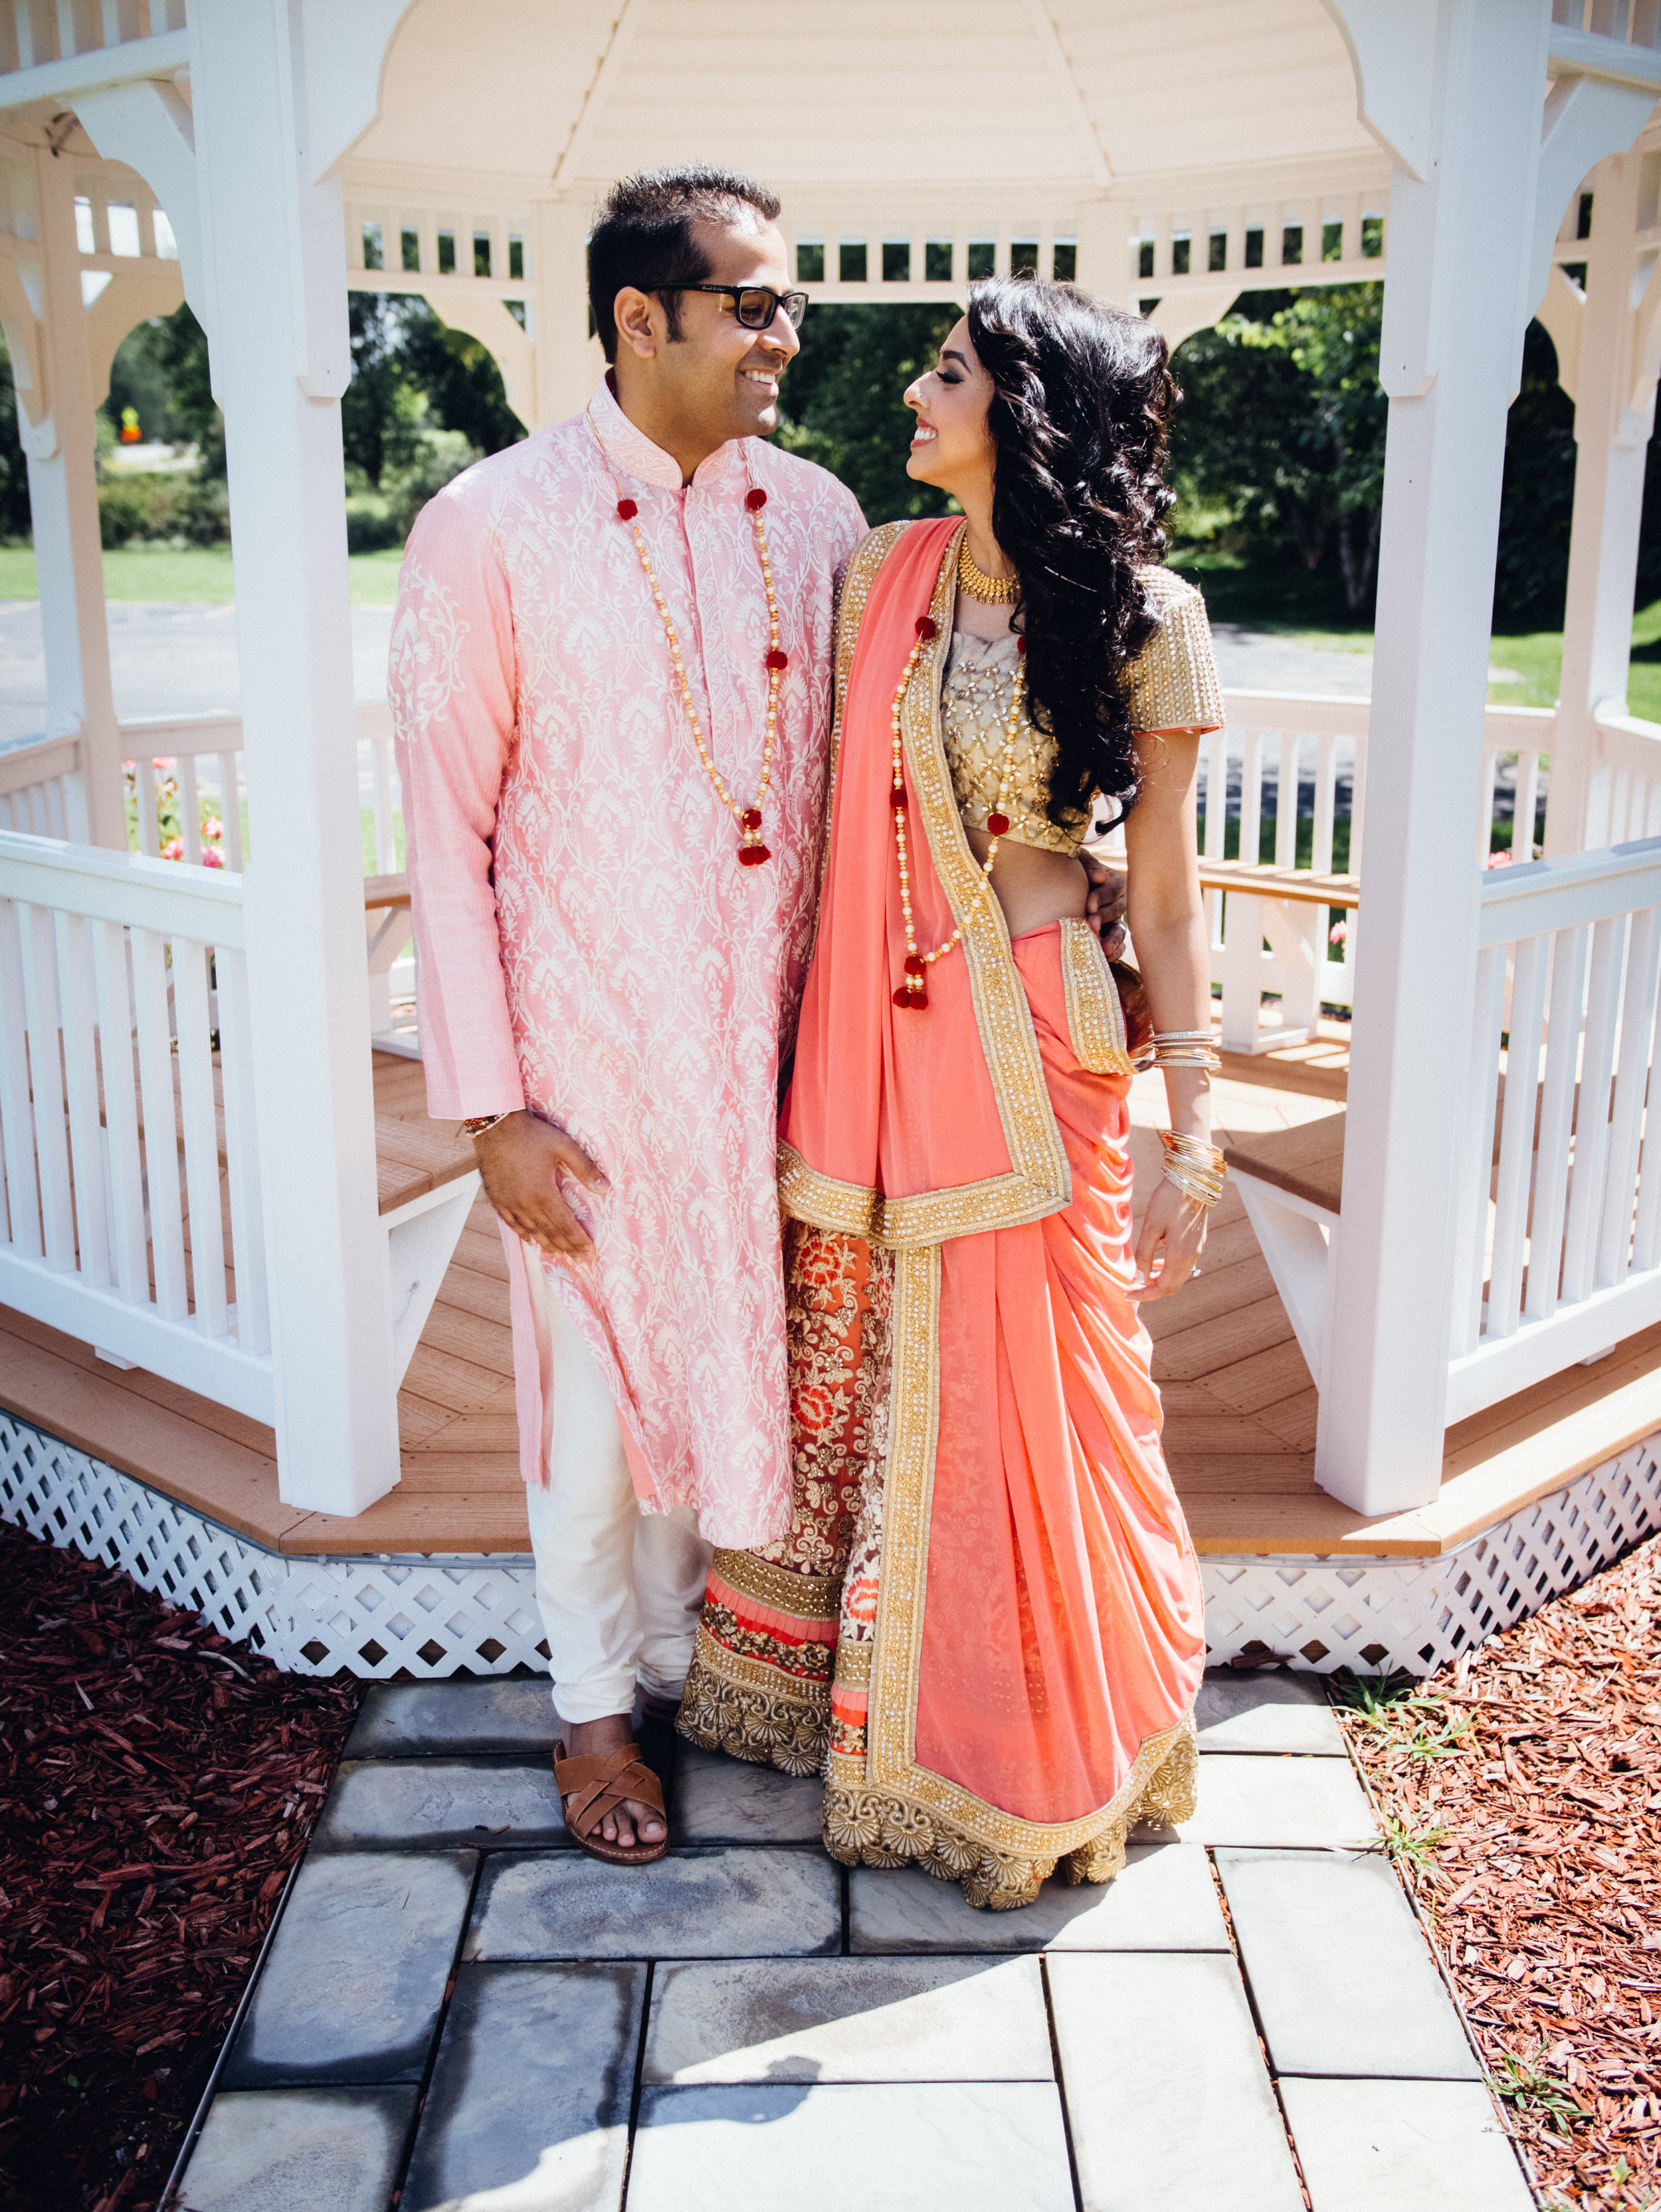 Videographer-Videographers-Videography-Wedding-Photographers-Photography-Photographer-Indian-Engagement-Ceremony-Shadow-Shine-Pictures-Lansing-Detroit